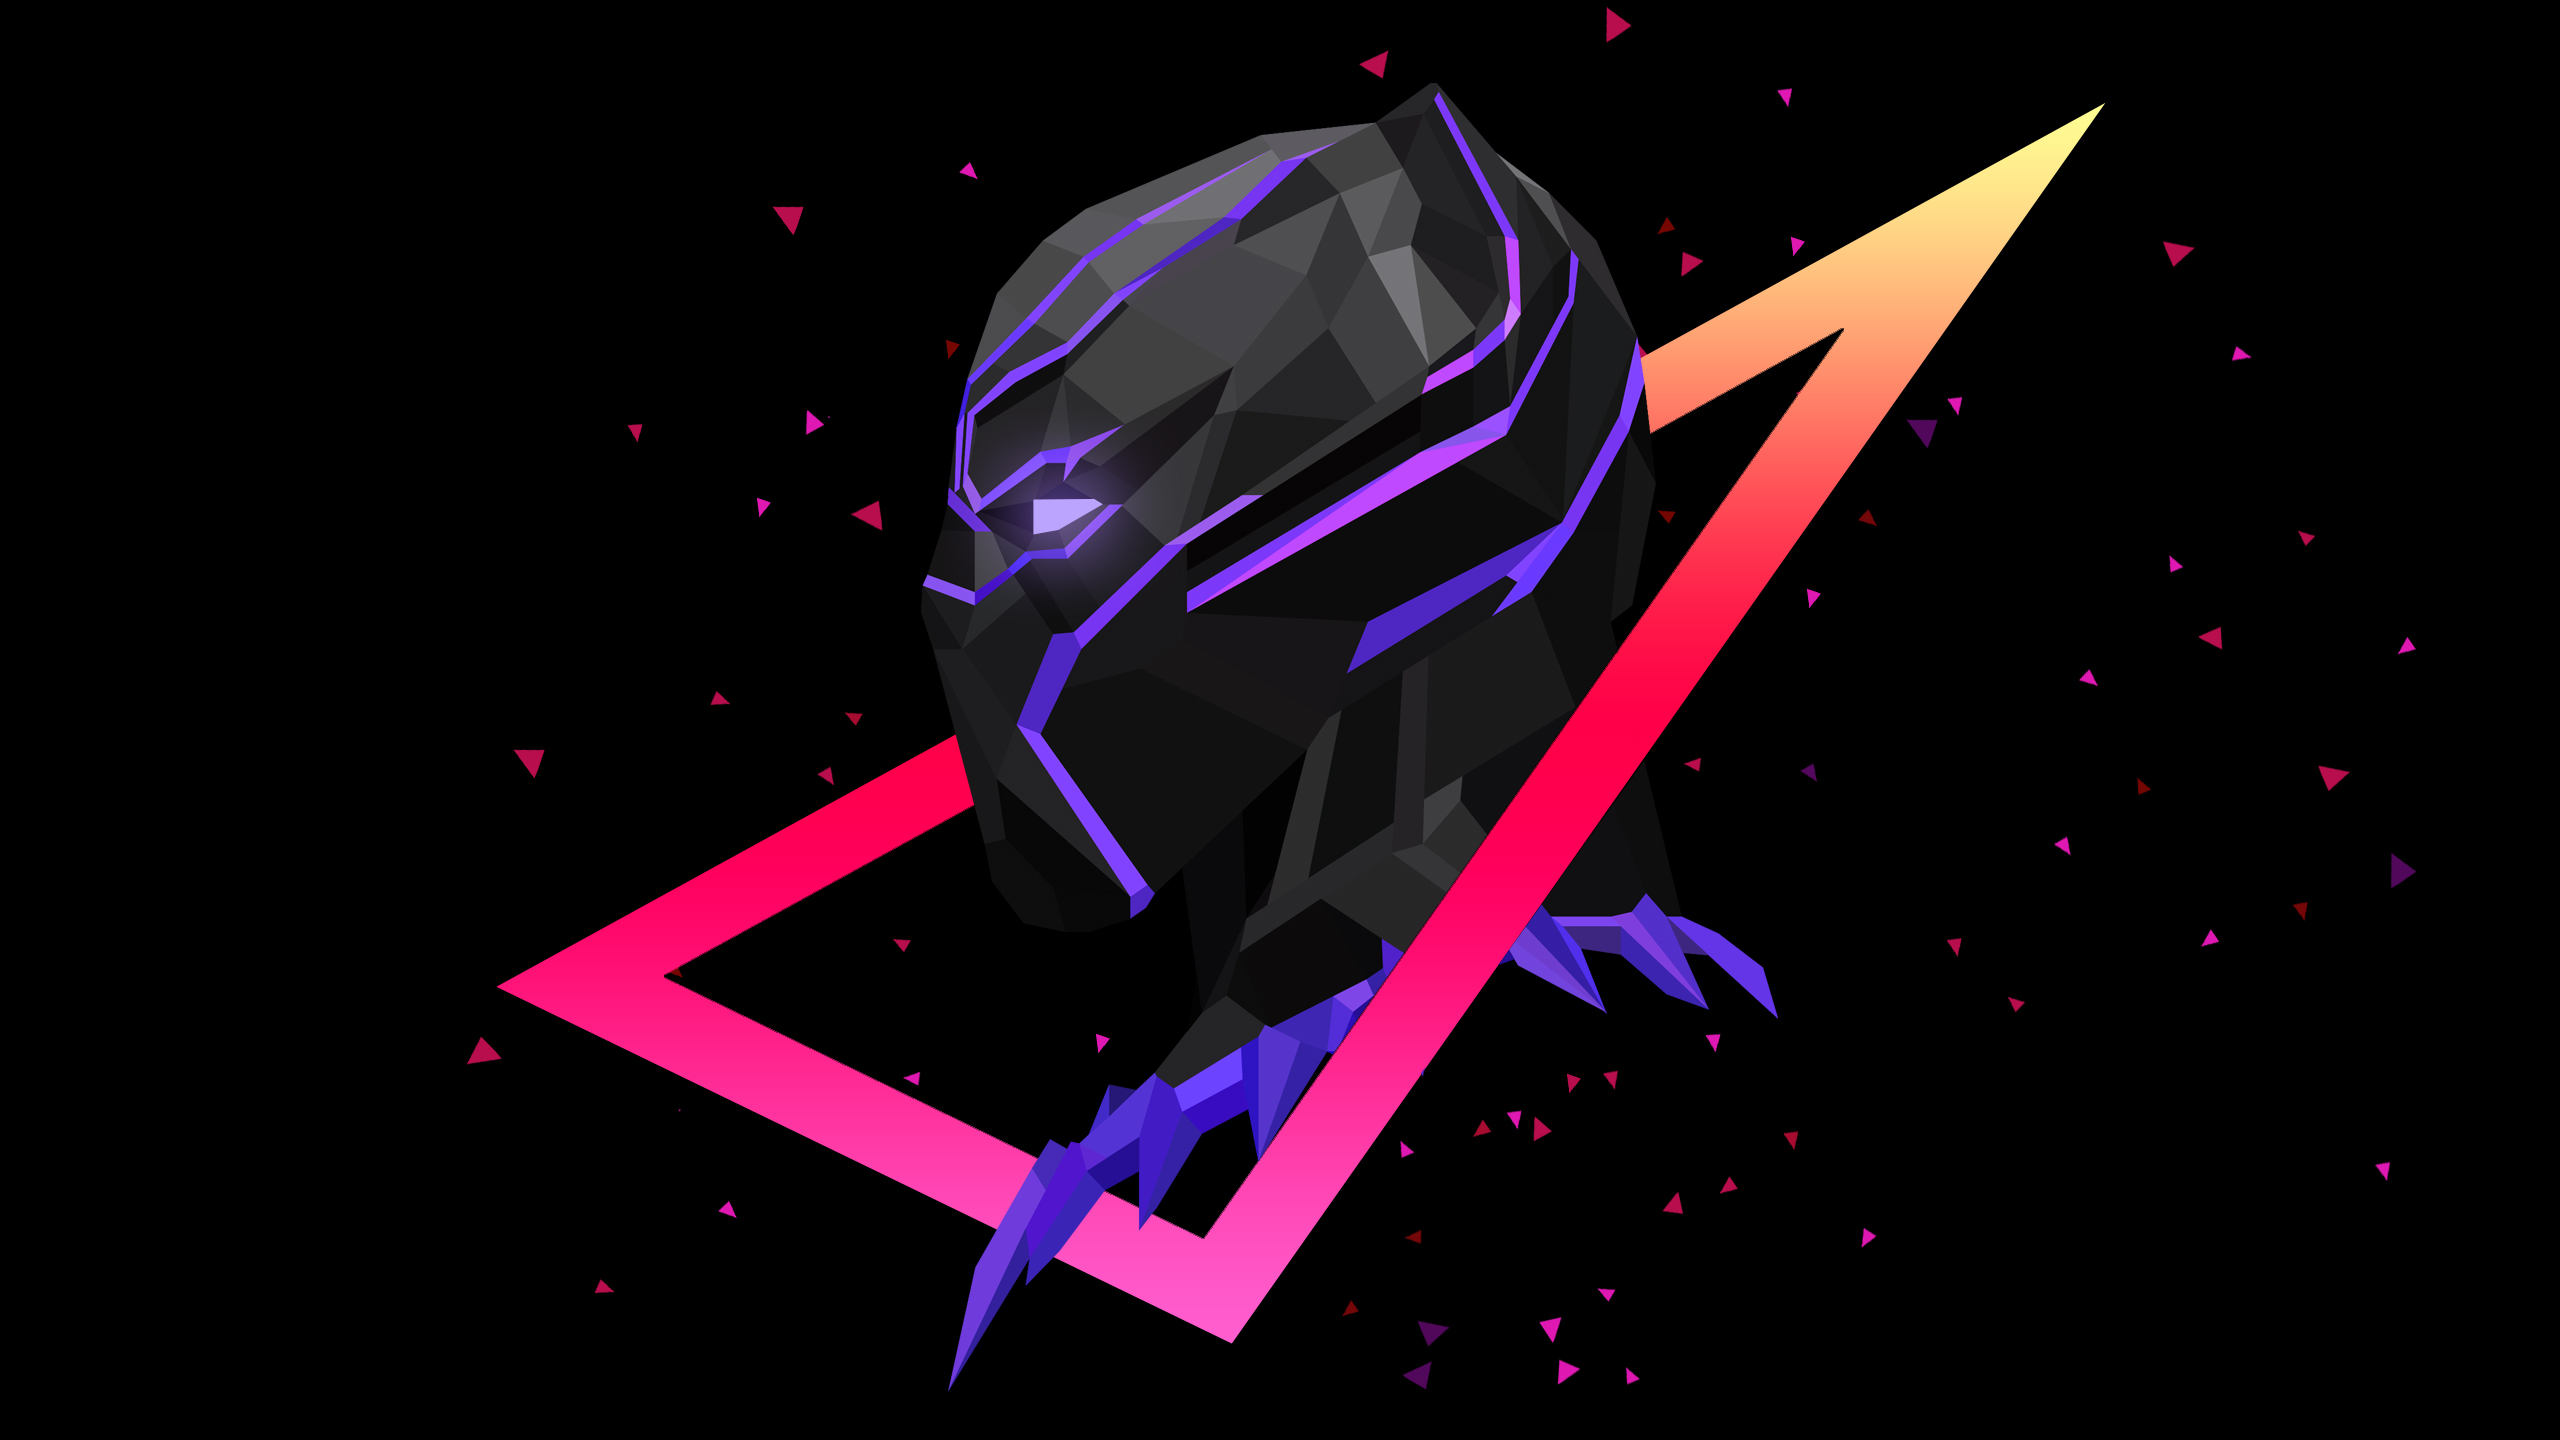 Low Poly Iphone Wallpaper Black Panther Low Ploy Artwork Wallpapers Hd Wallpapers